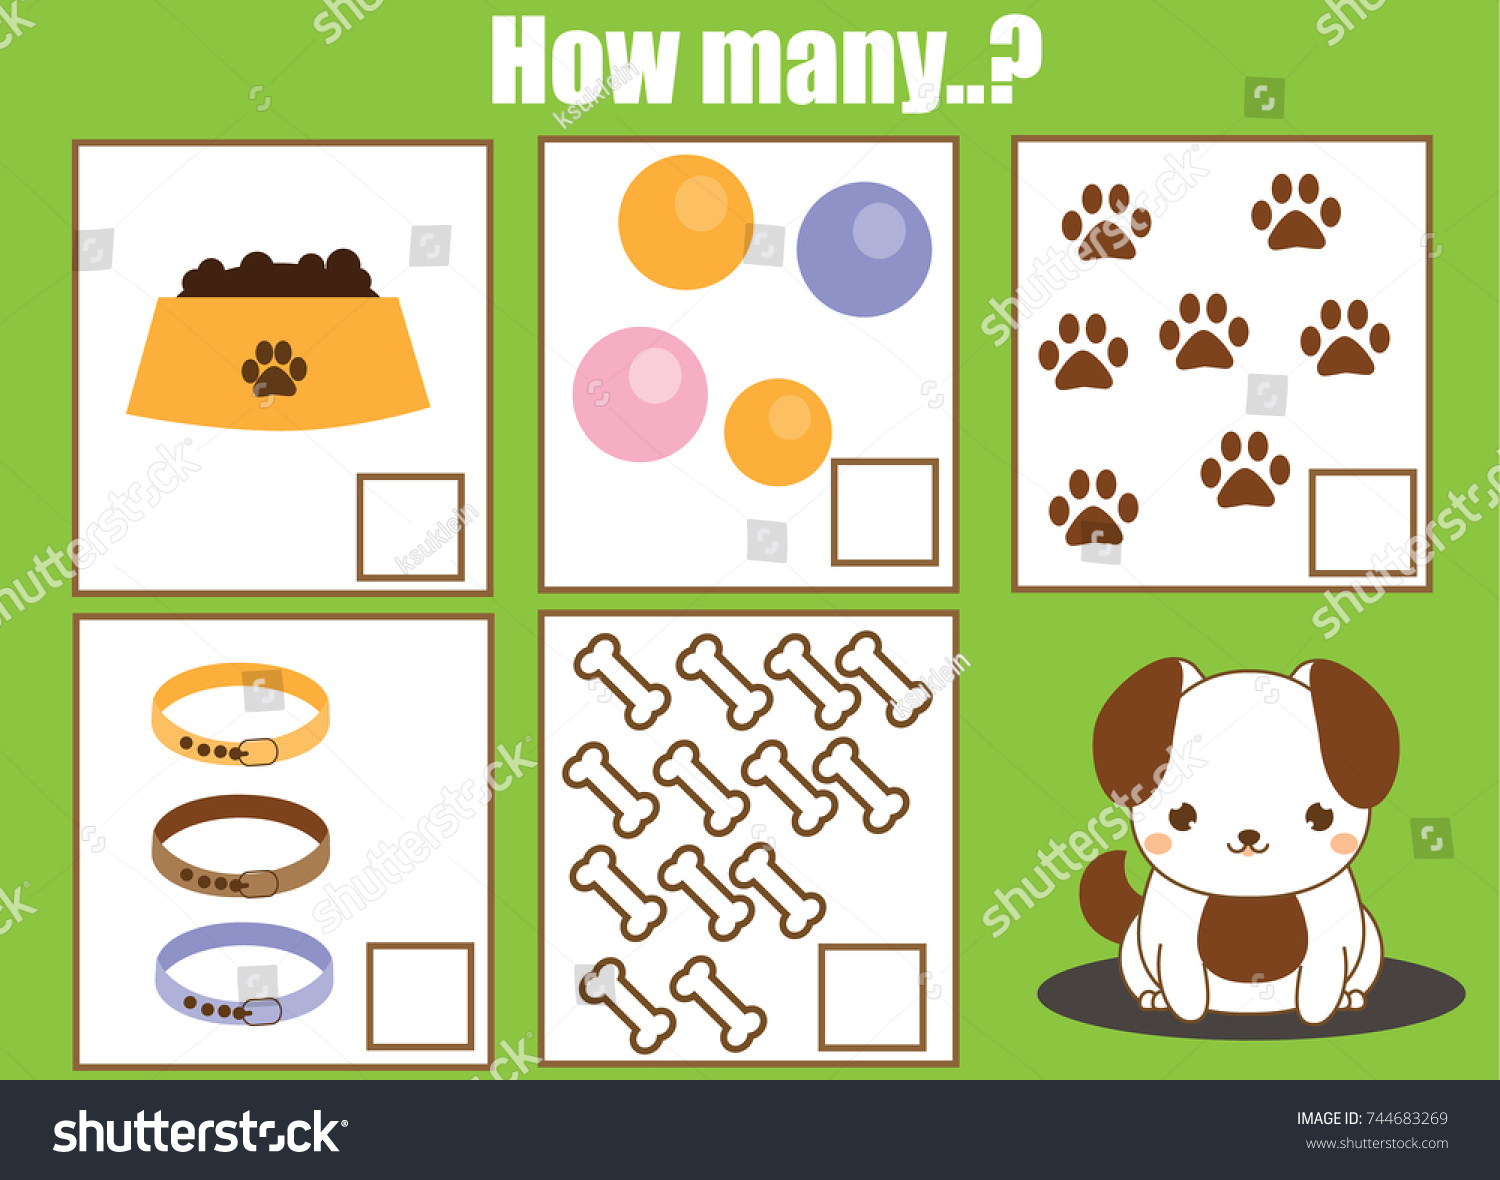 Counting Educational Children Game Math Kids Stock Vector 744683269 ...